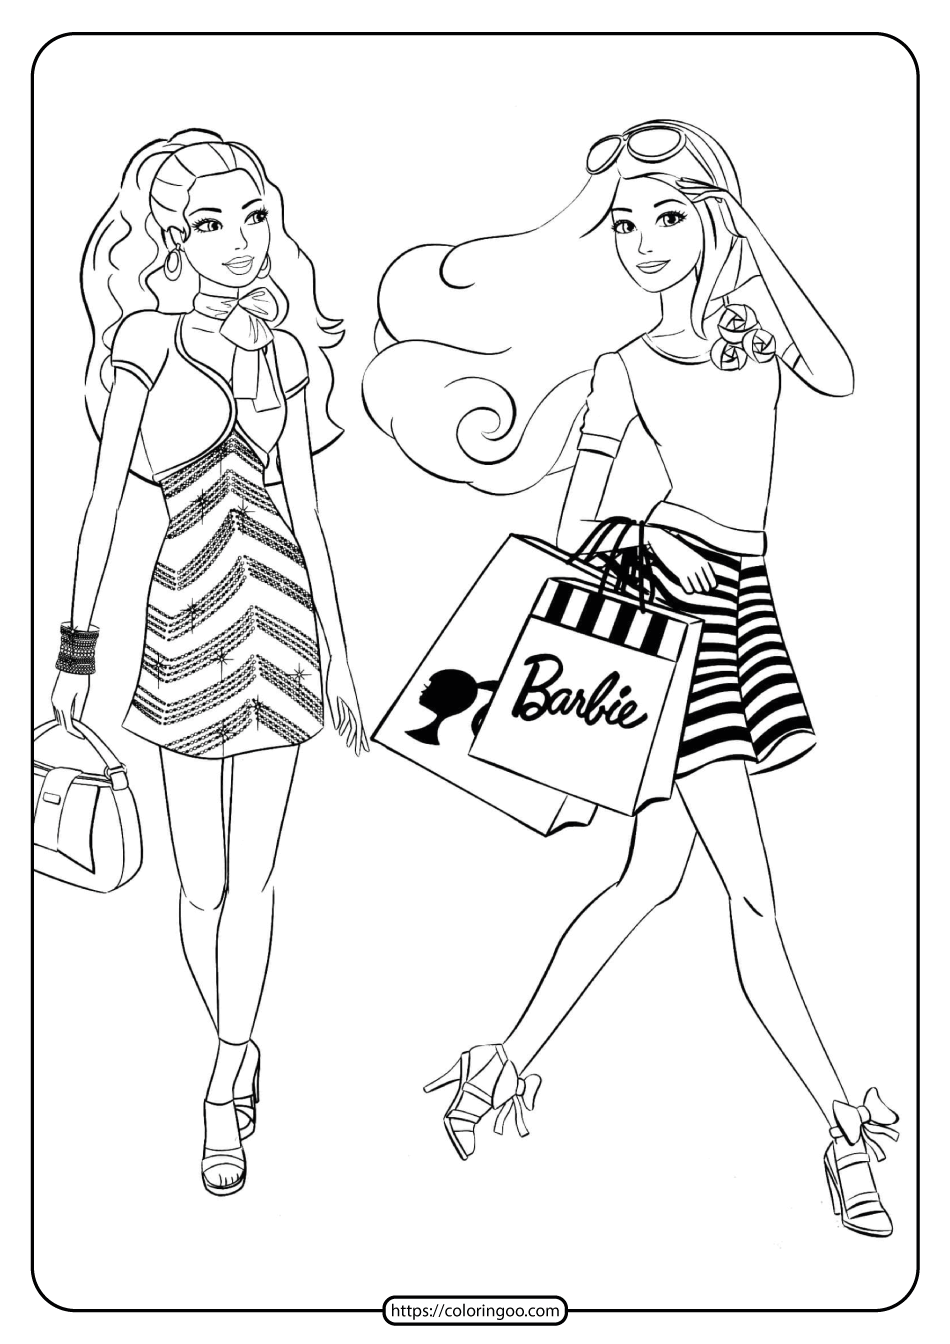 print printable barbie coloring pages get this printable image of barbie coloring pages t2o1m barbie coloring print printable pages